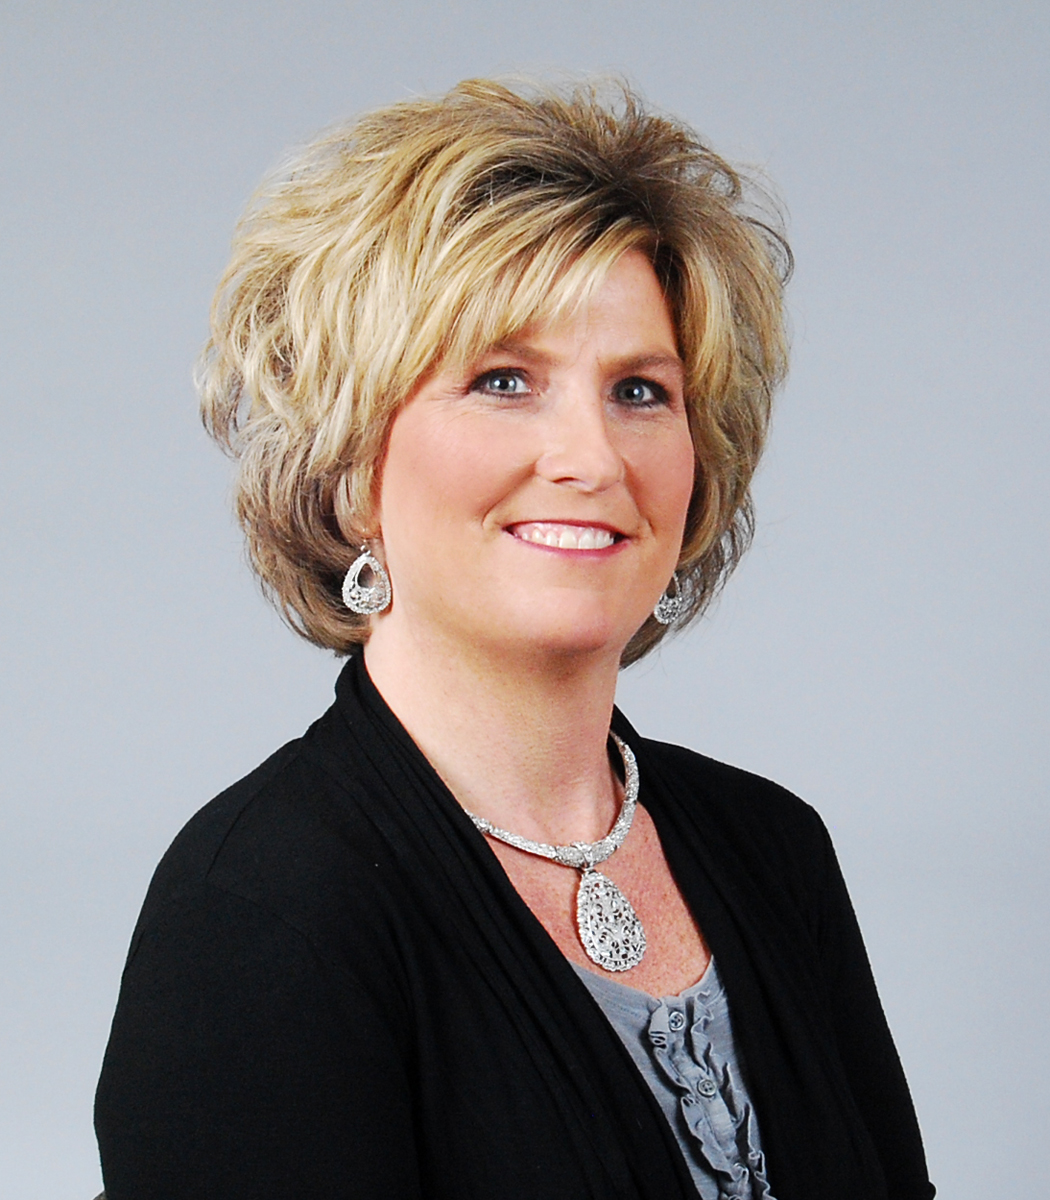 Paula R. DeJaynes - President of Corporate Relations - NAEIR